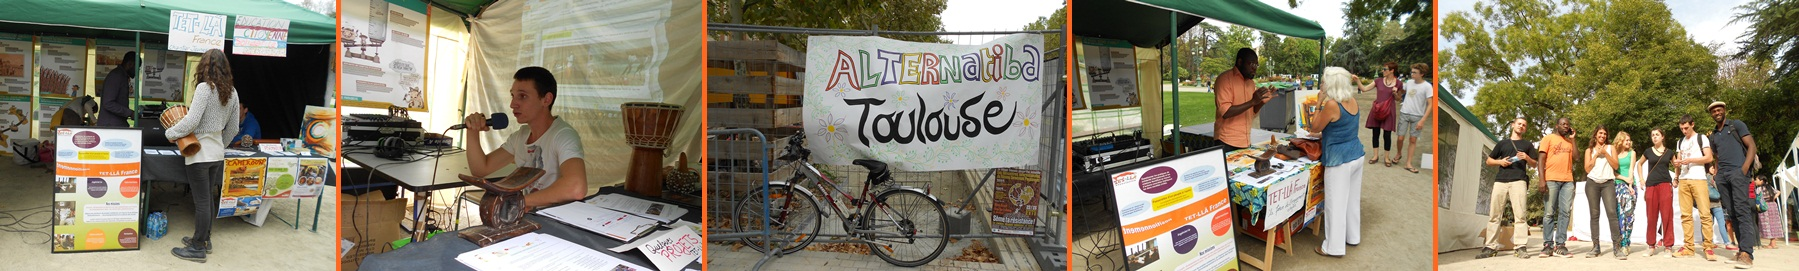 Alternatiba september site